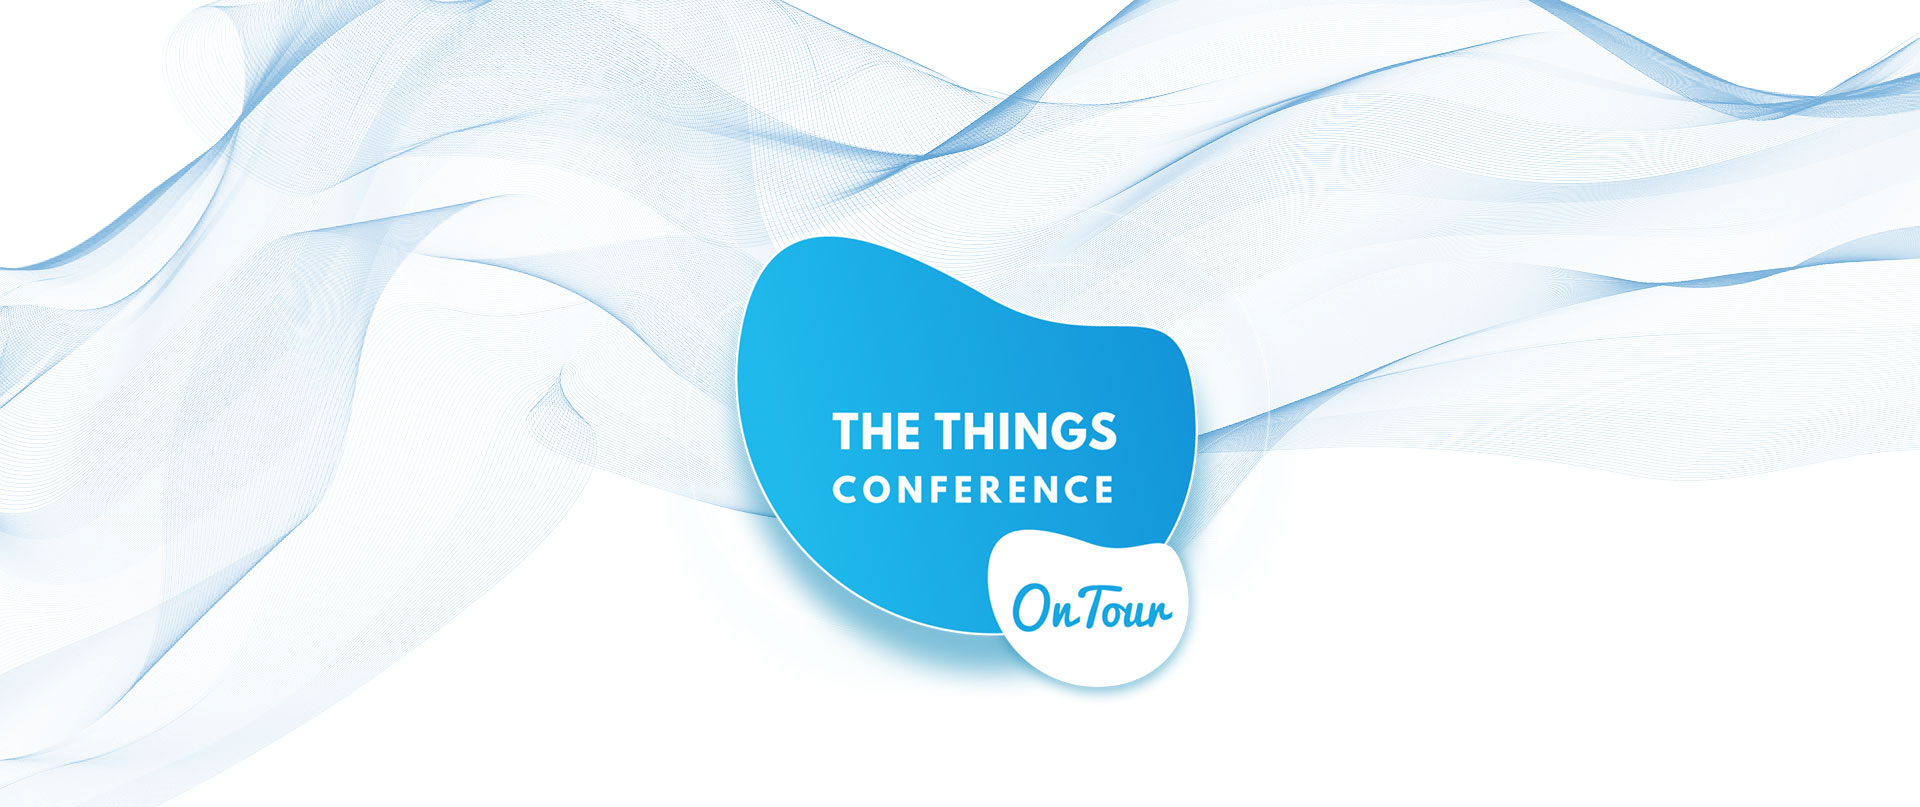 The Things Conference on tour